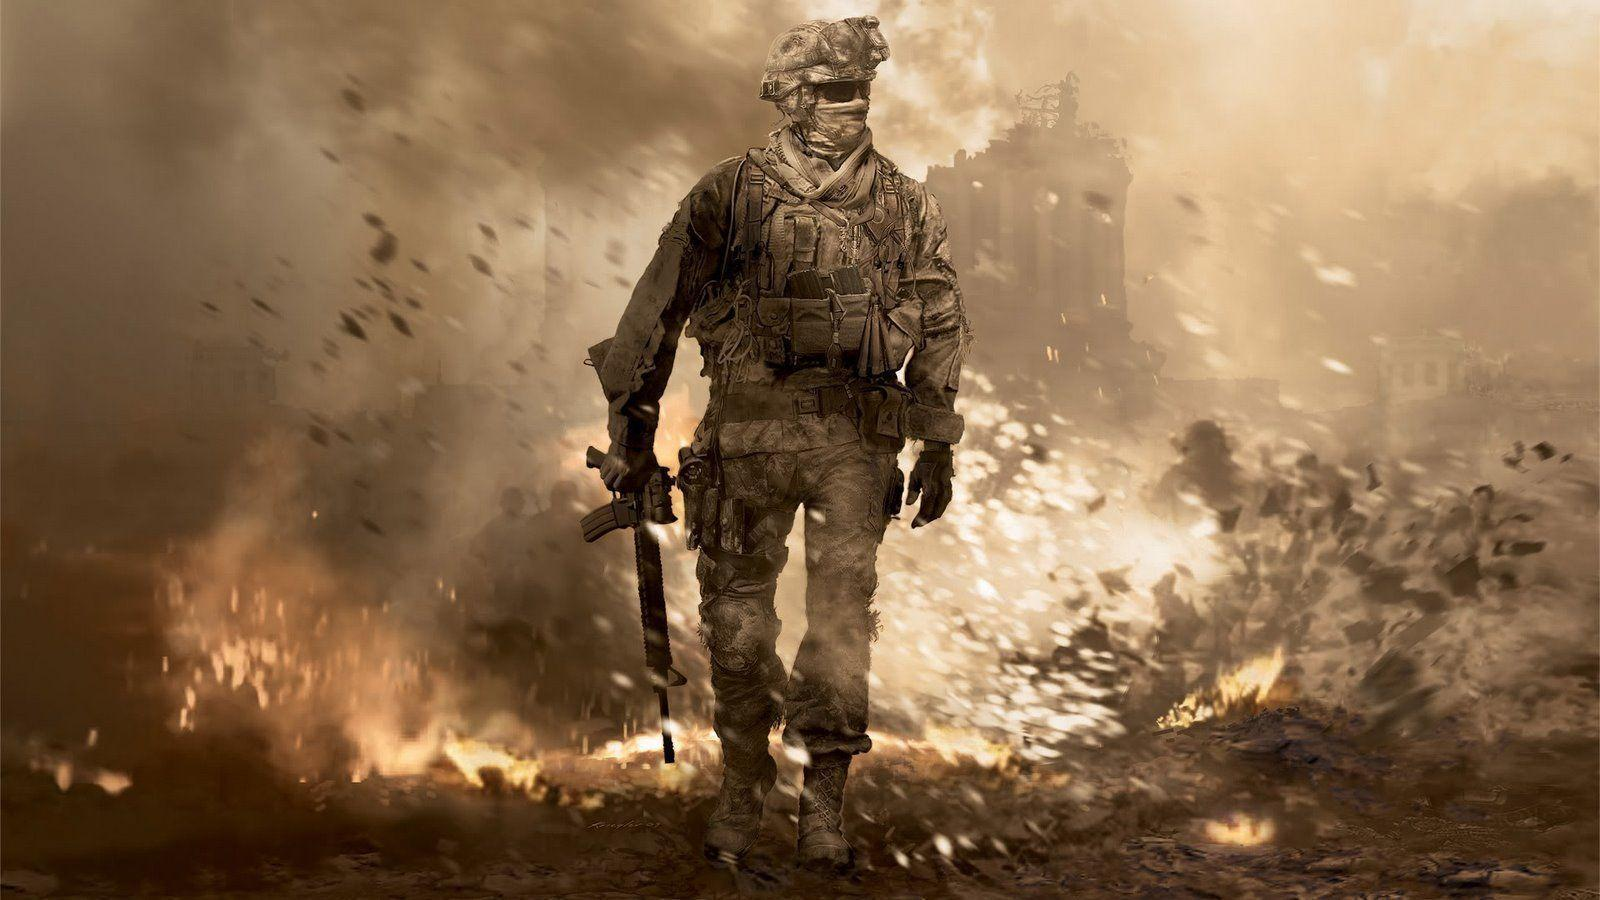 Download Call Of Duty Wallpaper Hd Backgrounds Download